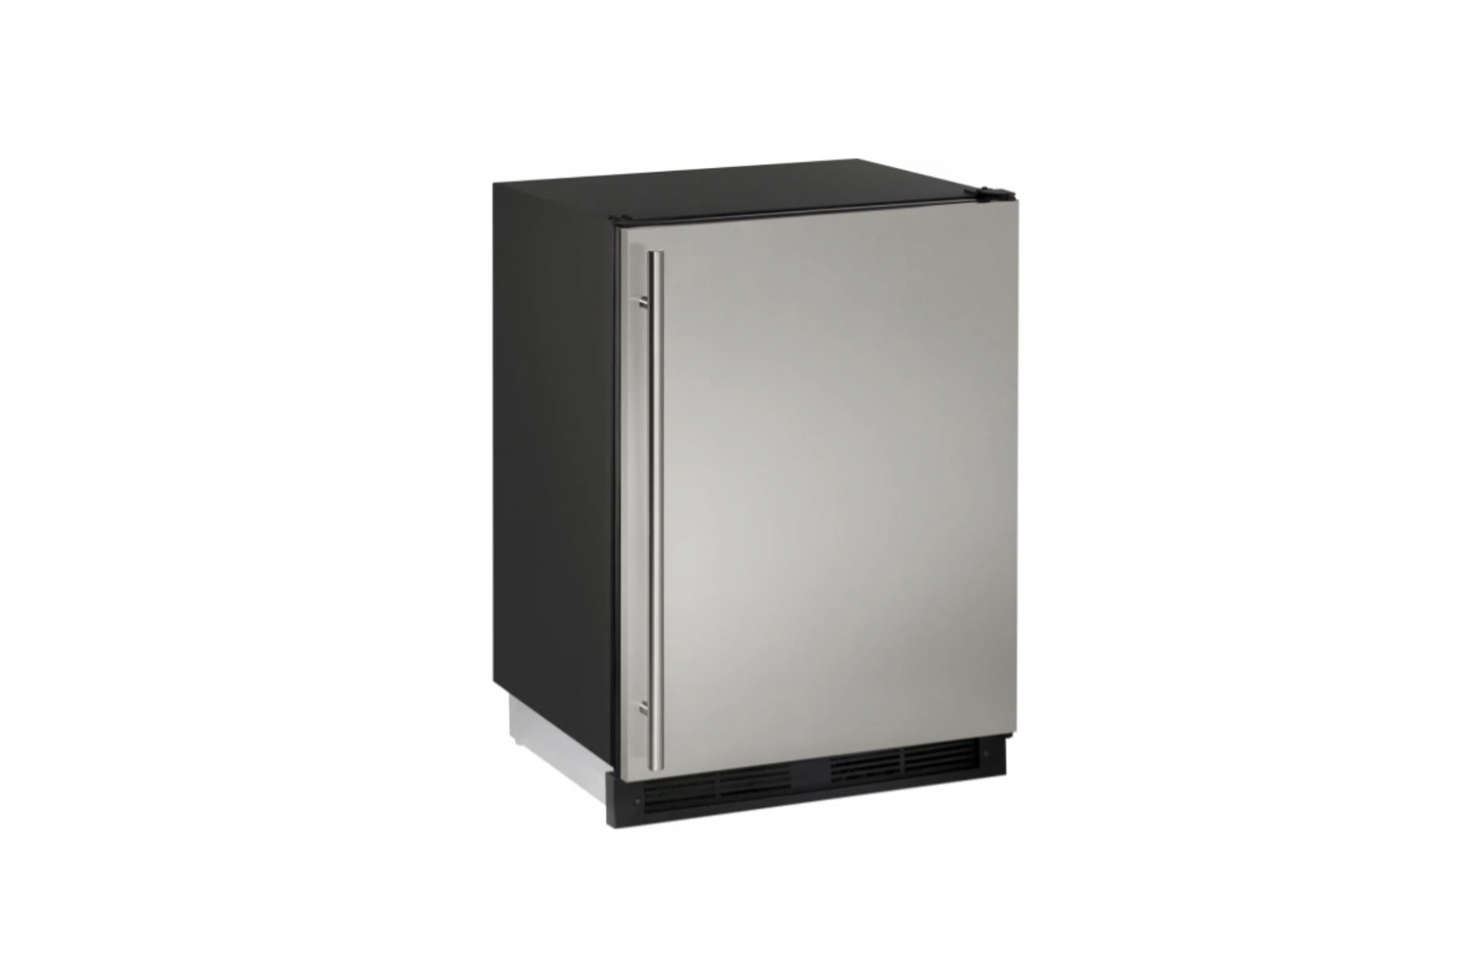 The Uline Stainless Steel Undercounter Compact Refrigerator (Udata-src=